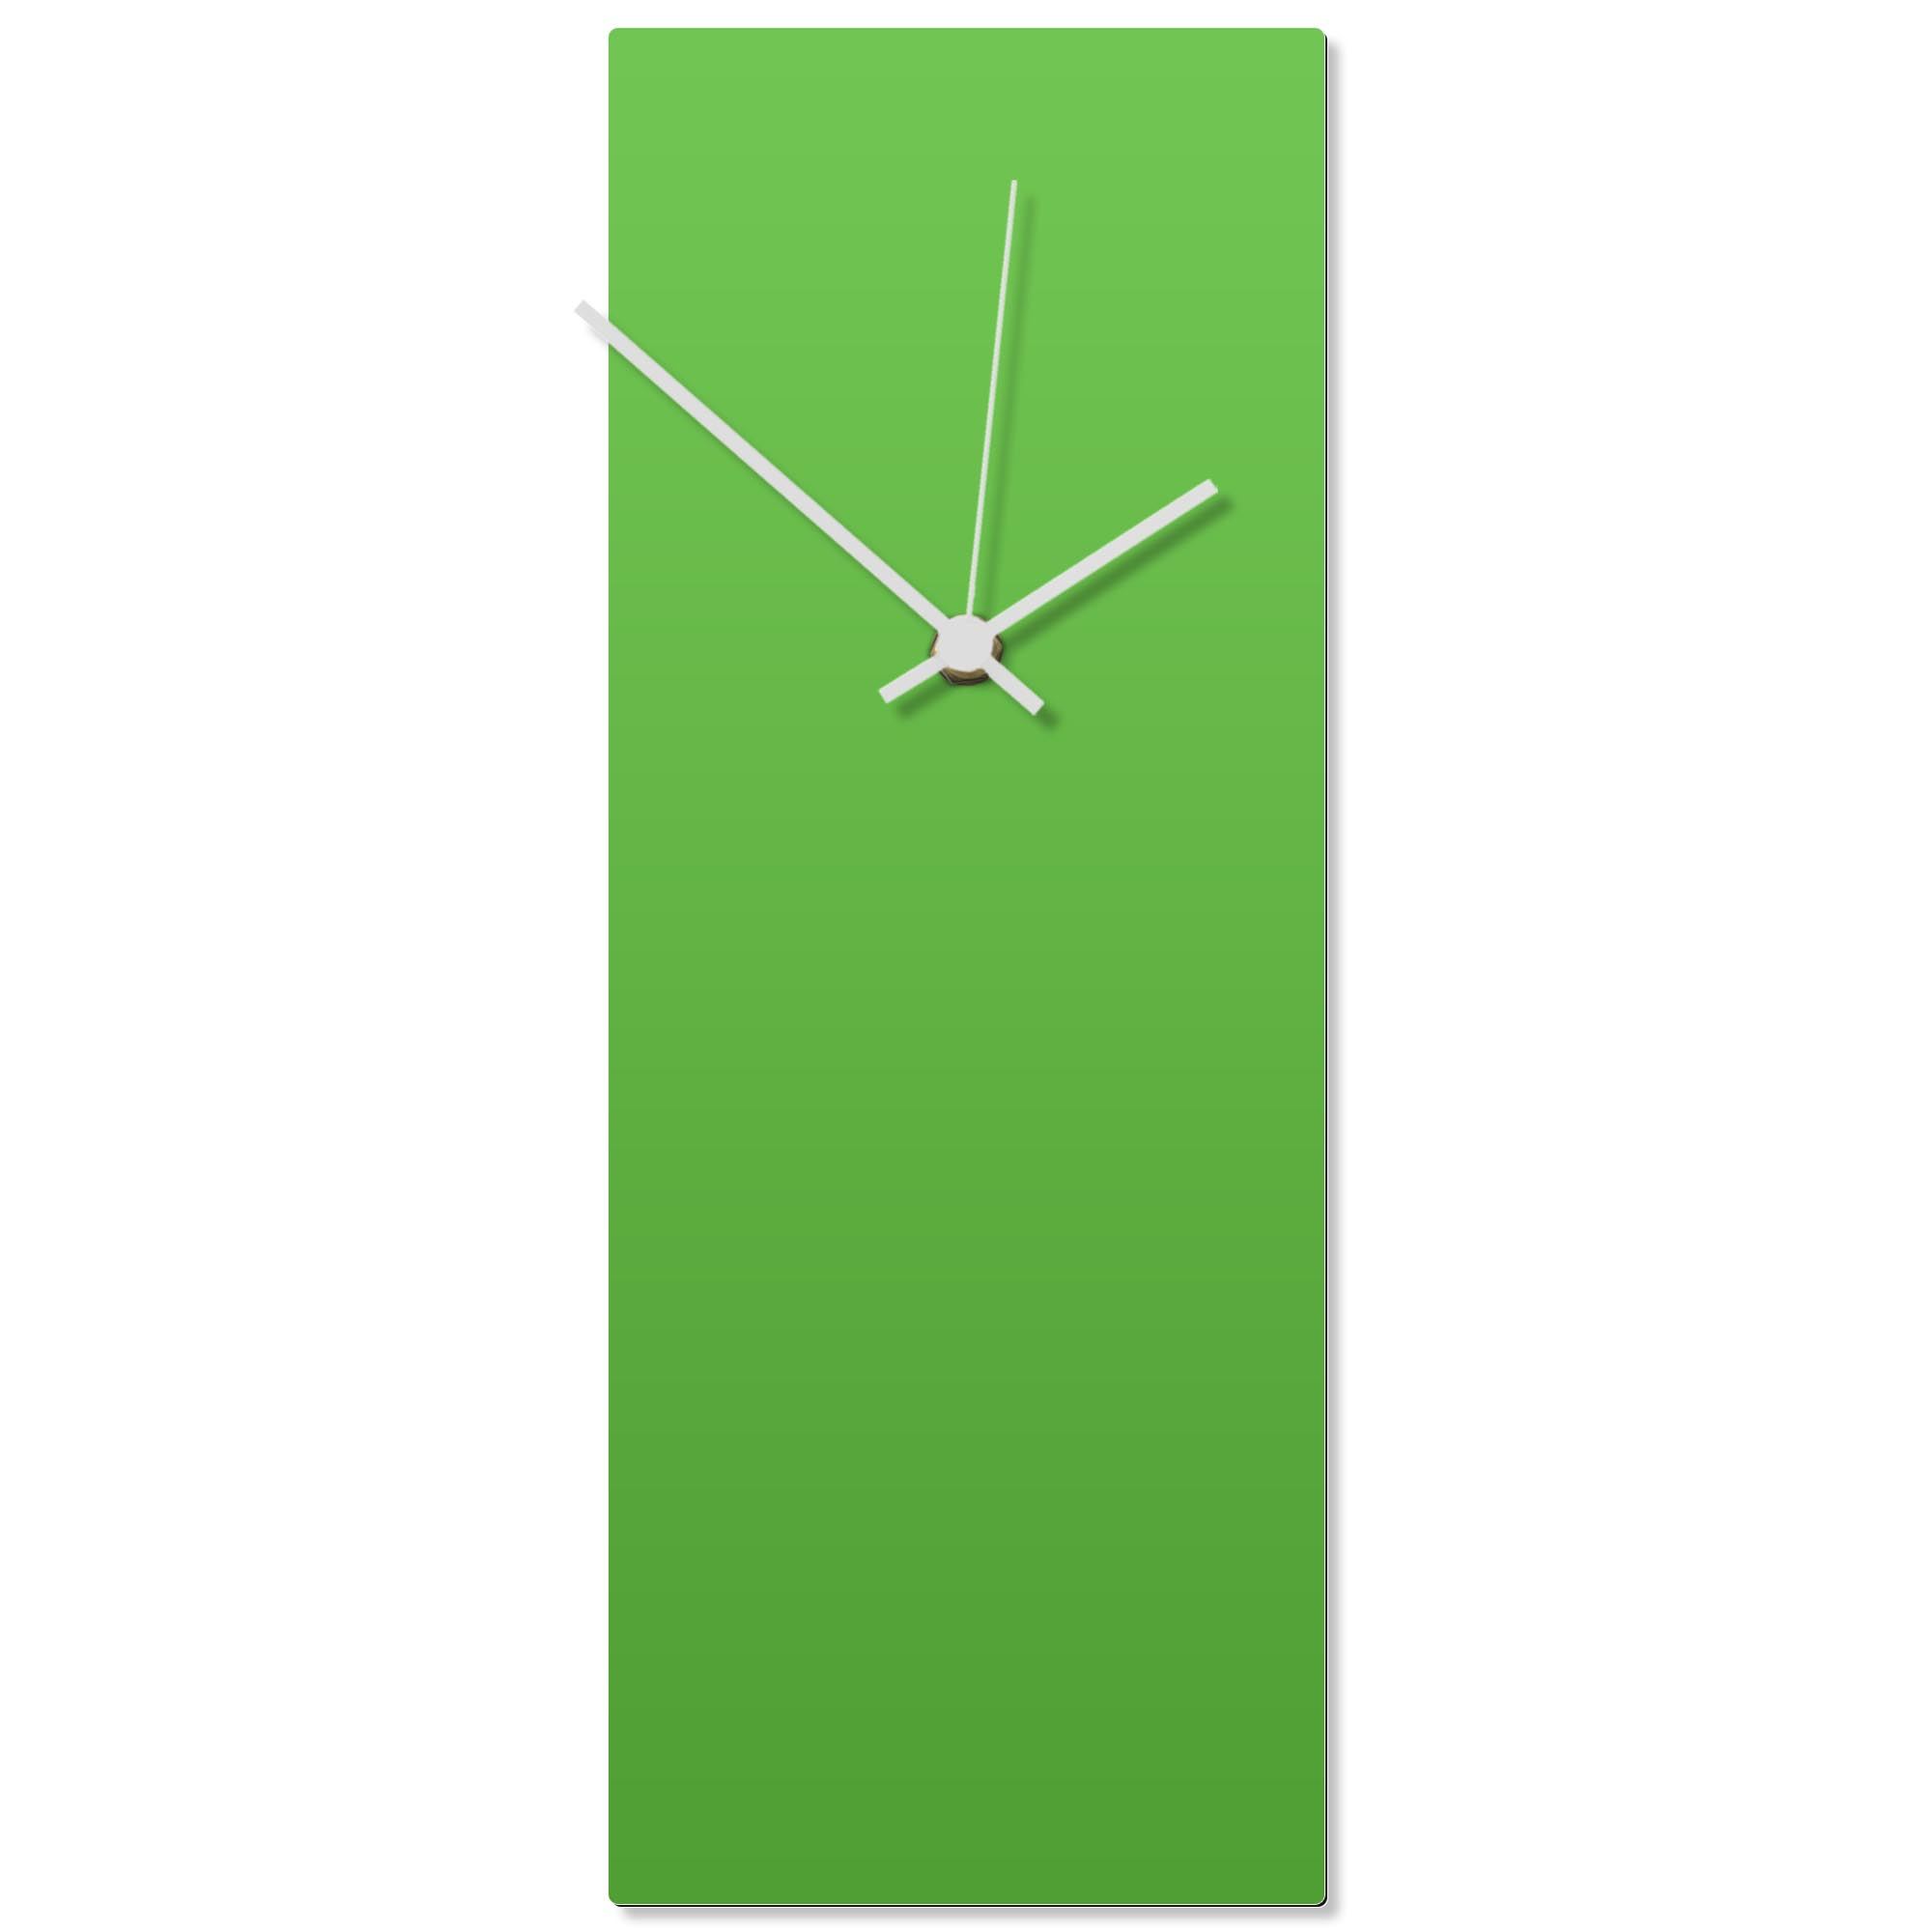 Greenout White Clock 6x16in. Aluminum Polymetal